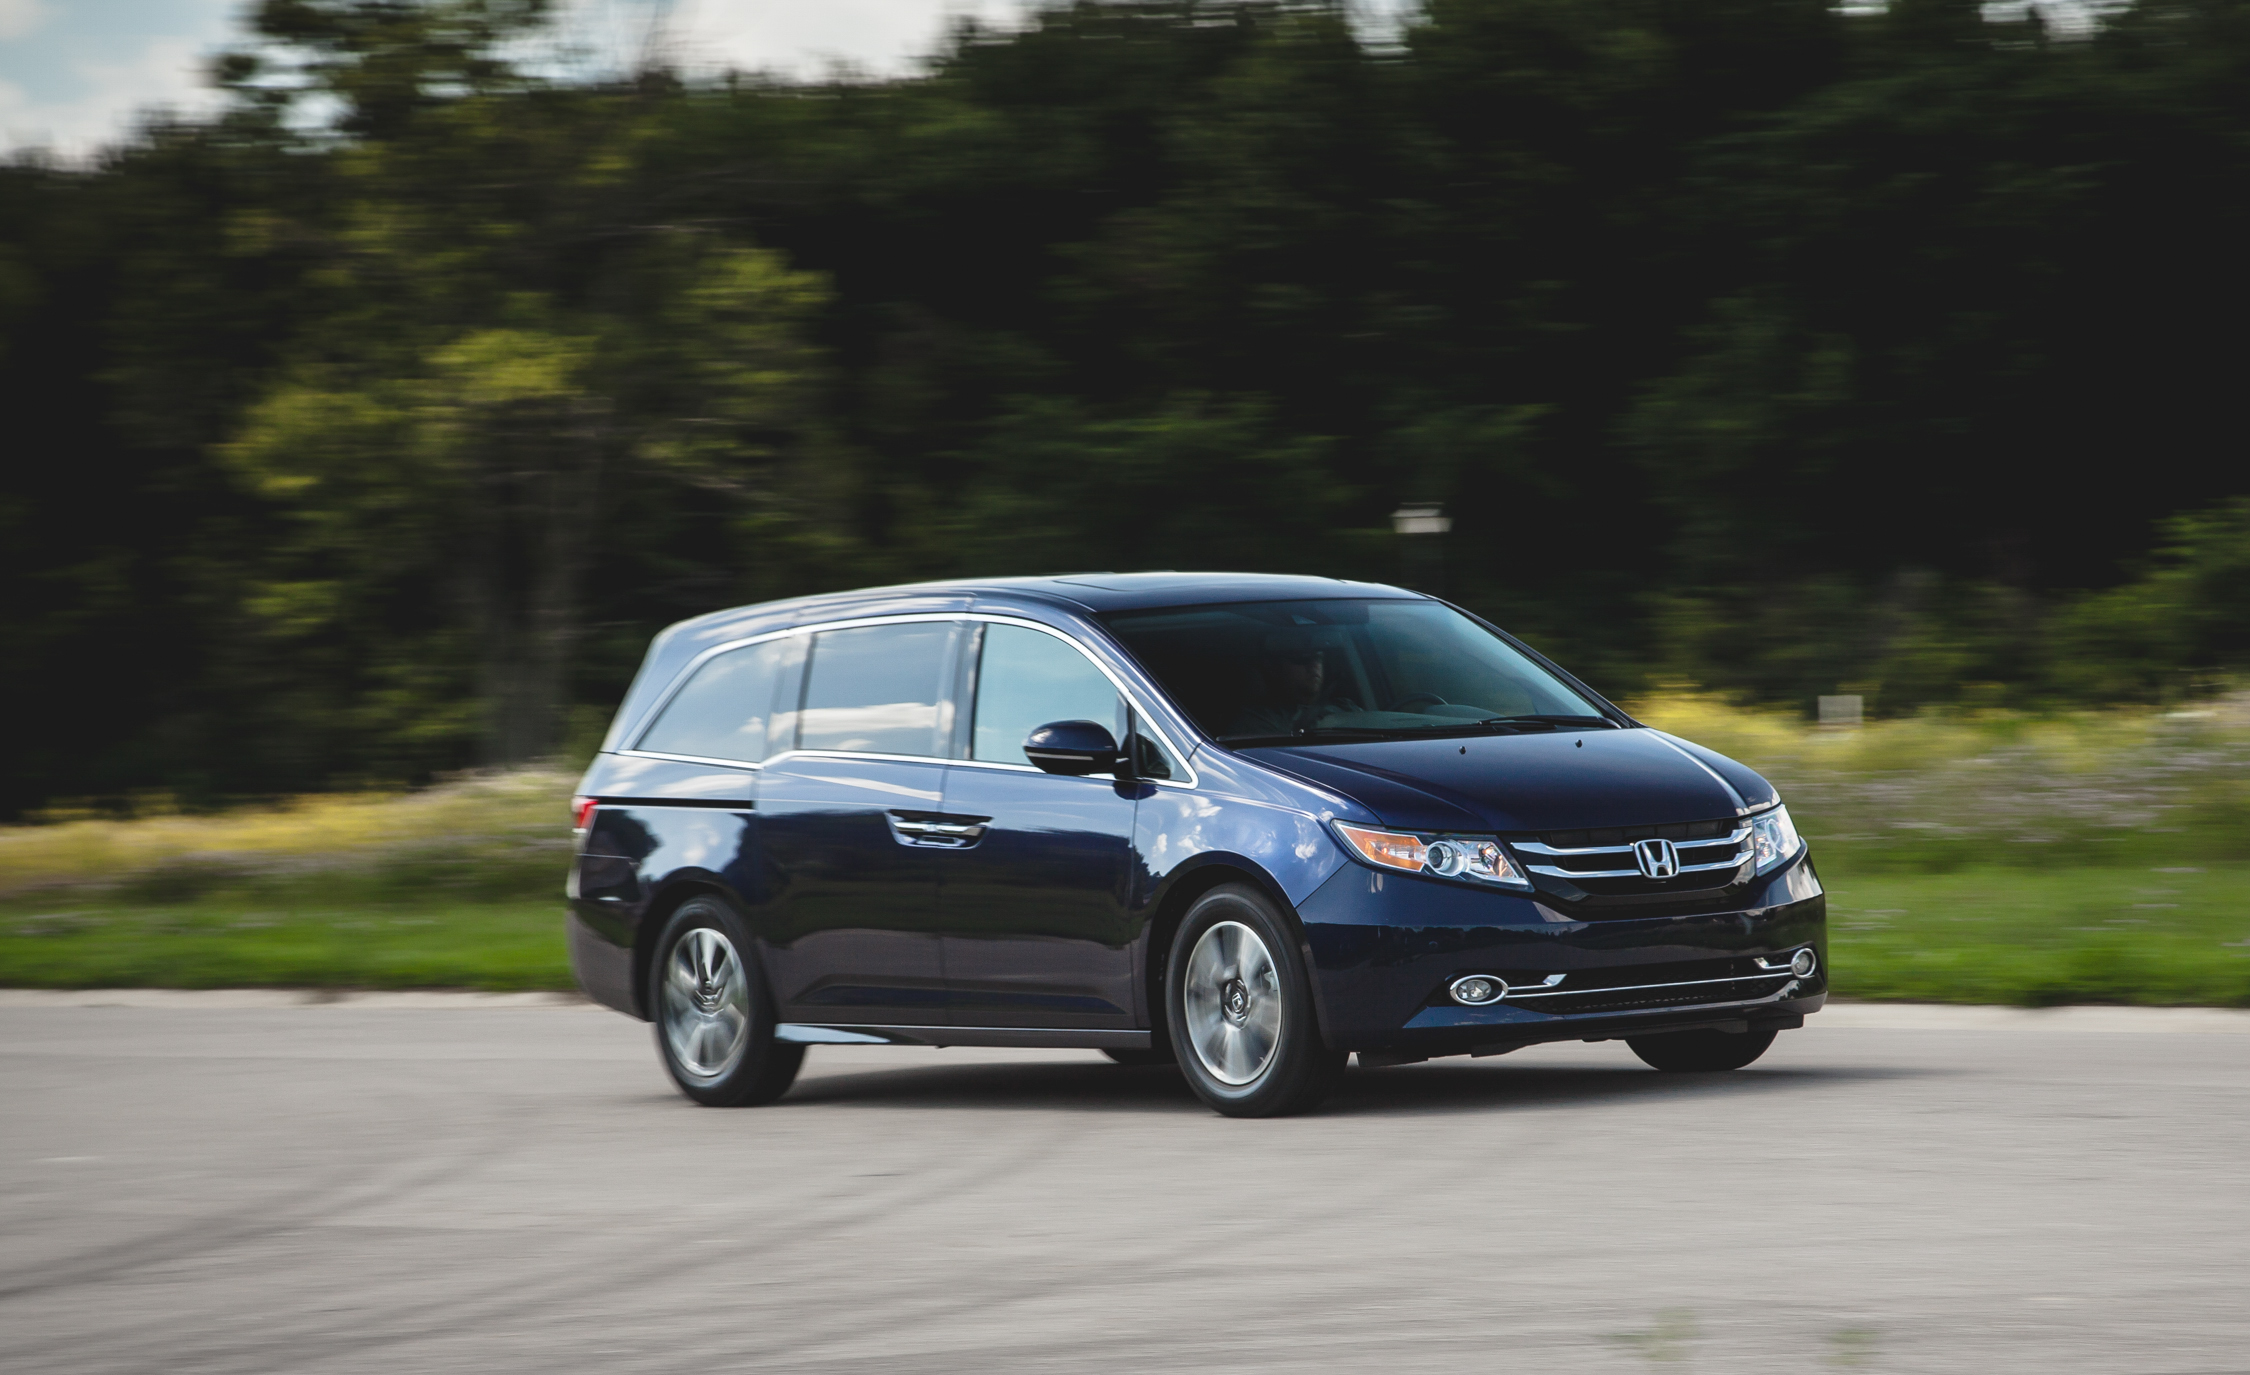 2014 Honda Odyssey Touring Elite (View 19 of 19)